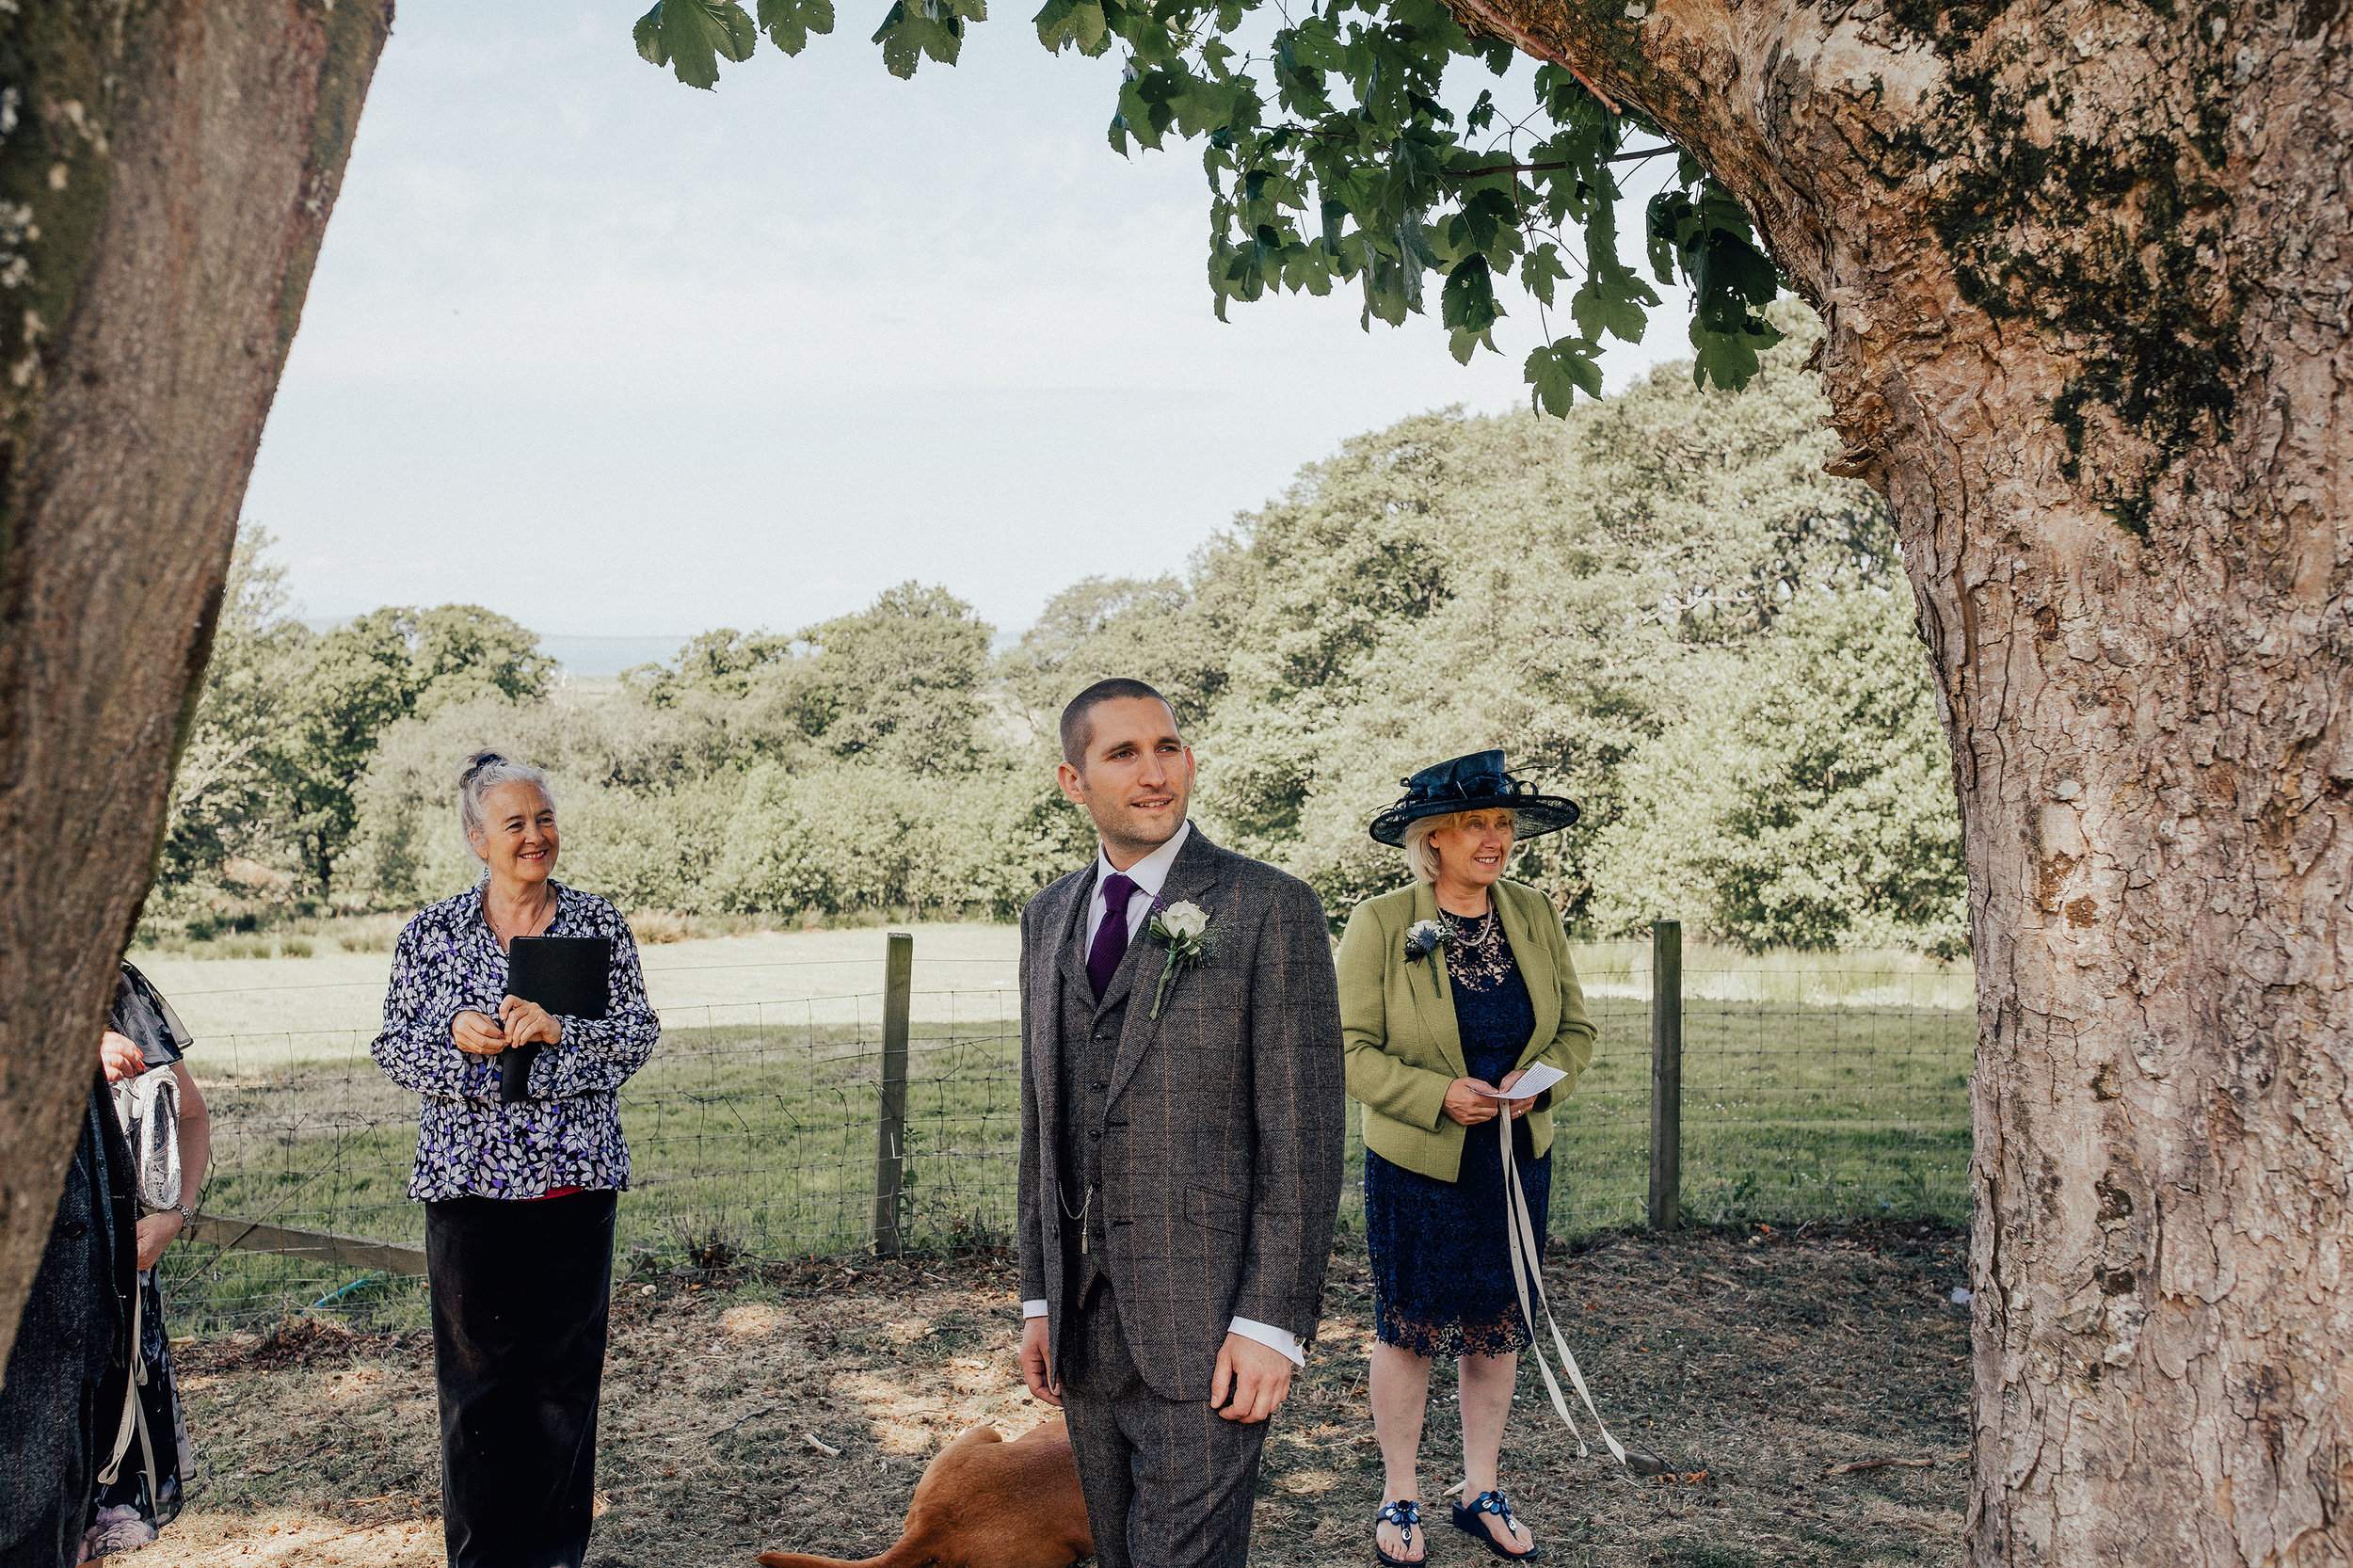 SCOTTISH_ELOPEMENT_PHOTOGRAPHER_PJ_PHILLIPS_PHOTOGRAPHY_45.jpg